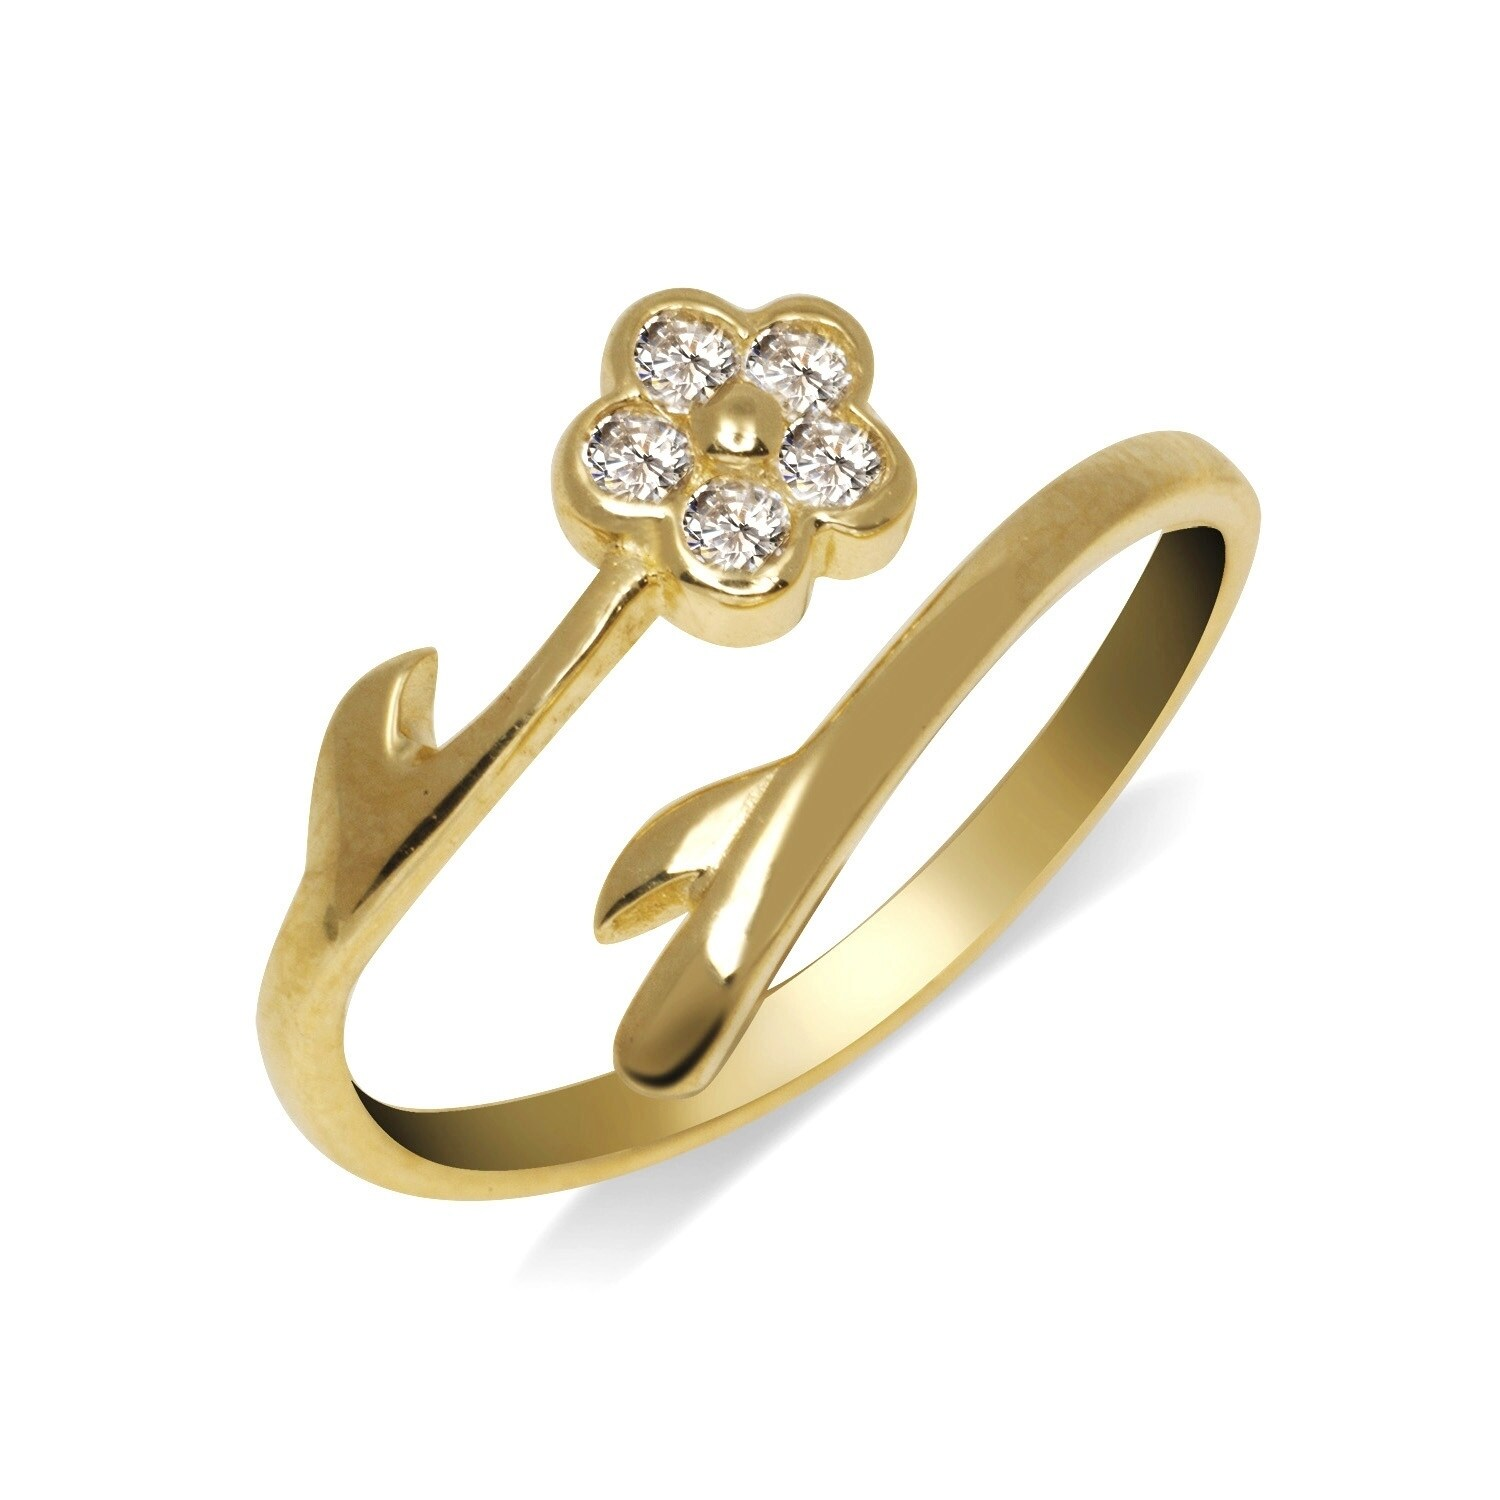 Yellow Adjustable 10K Toe Ring with Cubic Zirconia